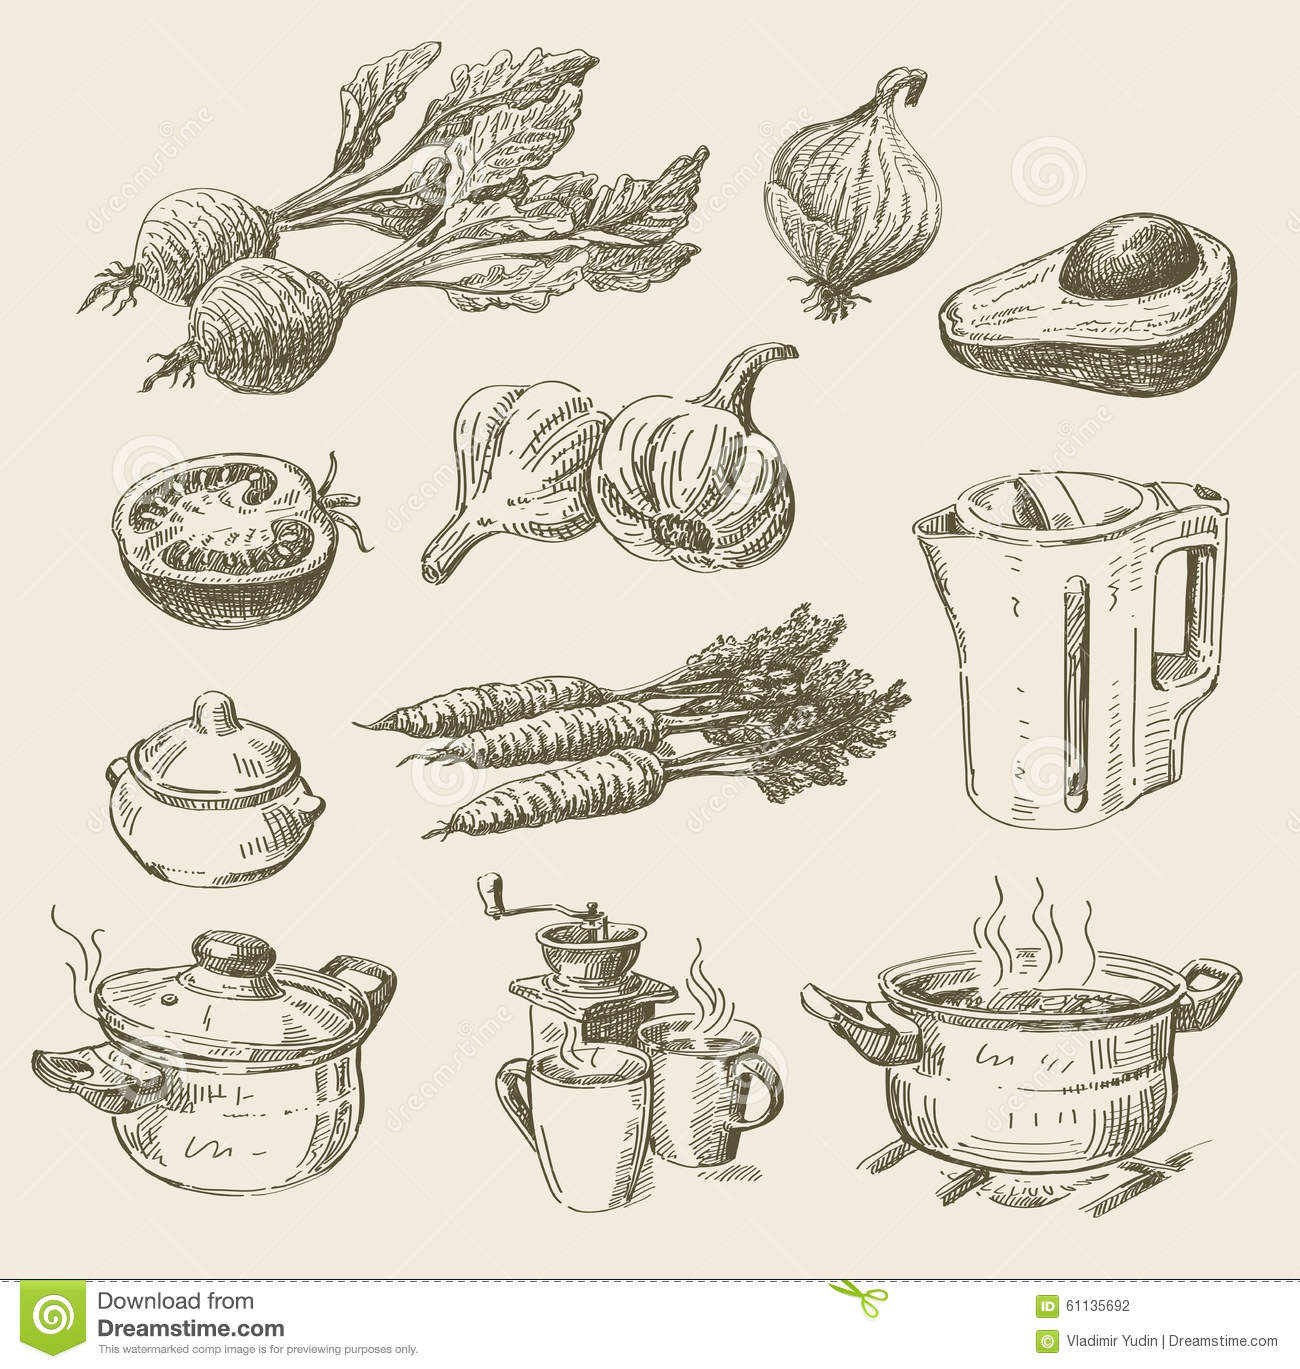 Hand Drawn Food Sketch Stock Vector. Image Of Cooking - 61135692